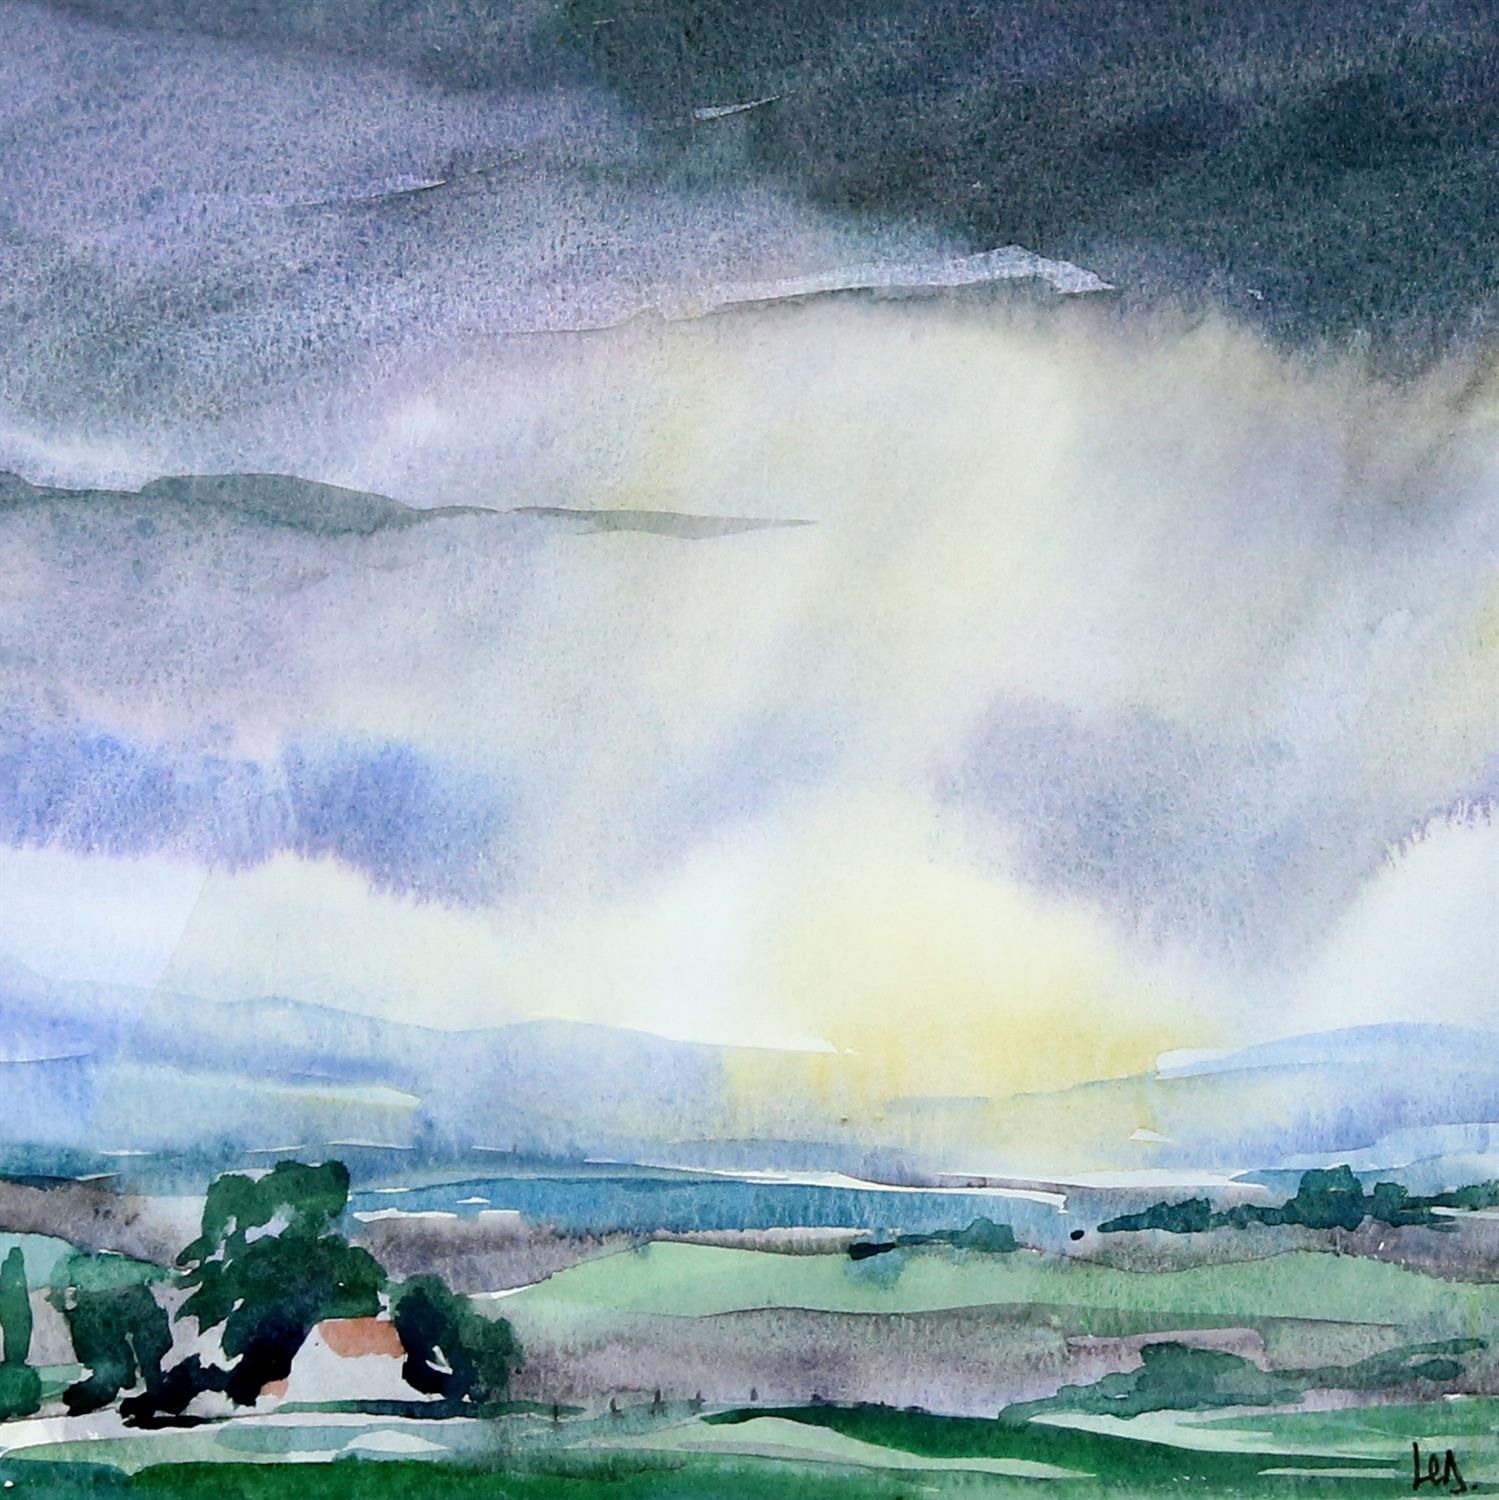 Landscape with sky, watercolour on paper, signed with monogram HD? lower right. 22.5 x 22.5cm.